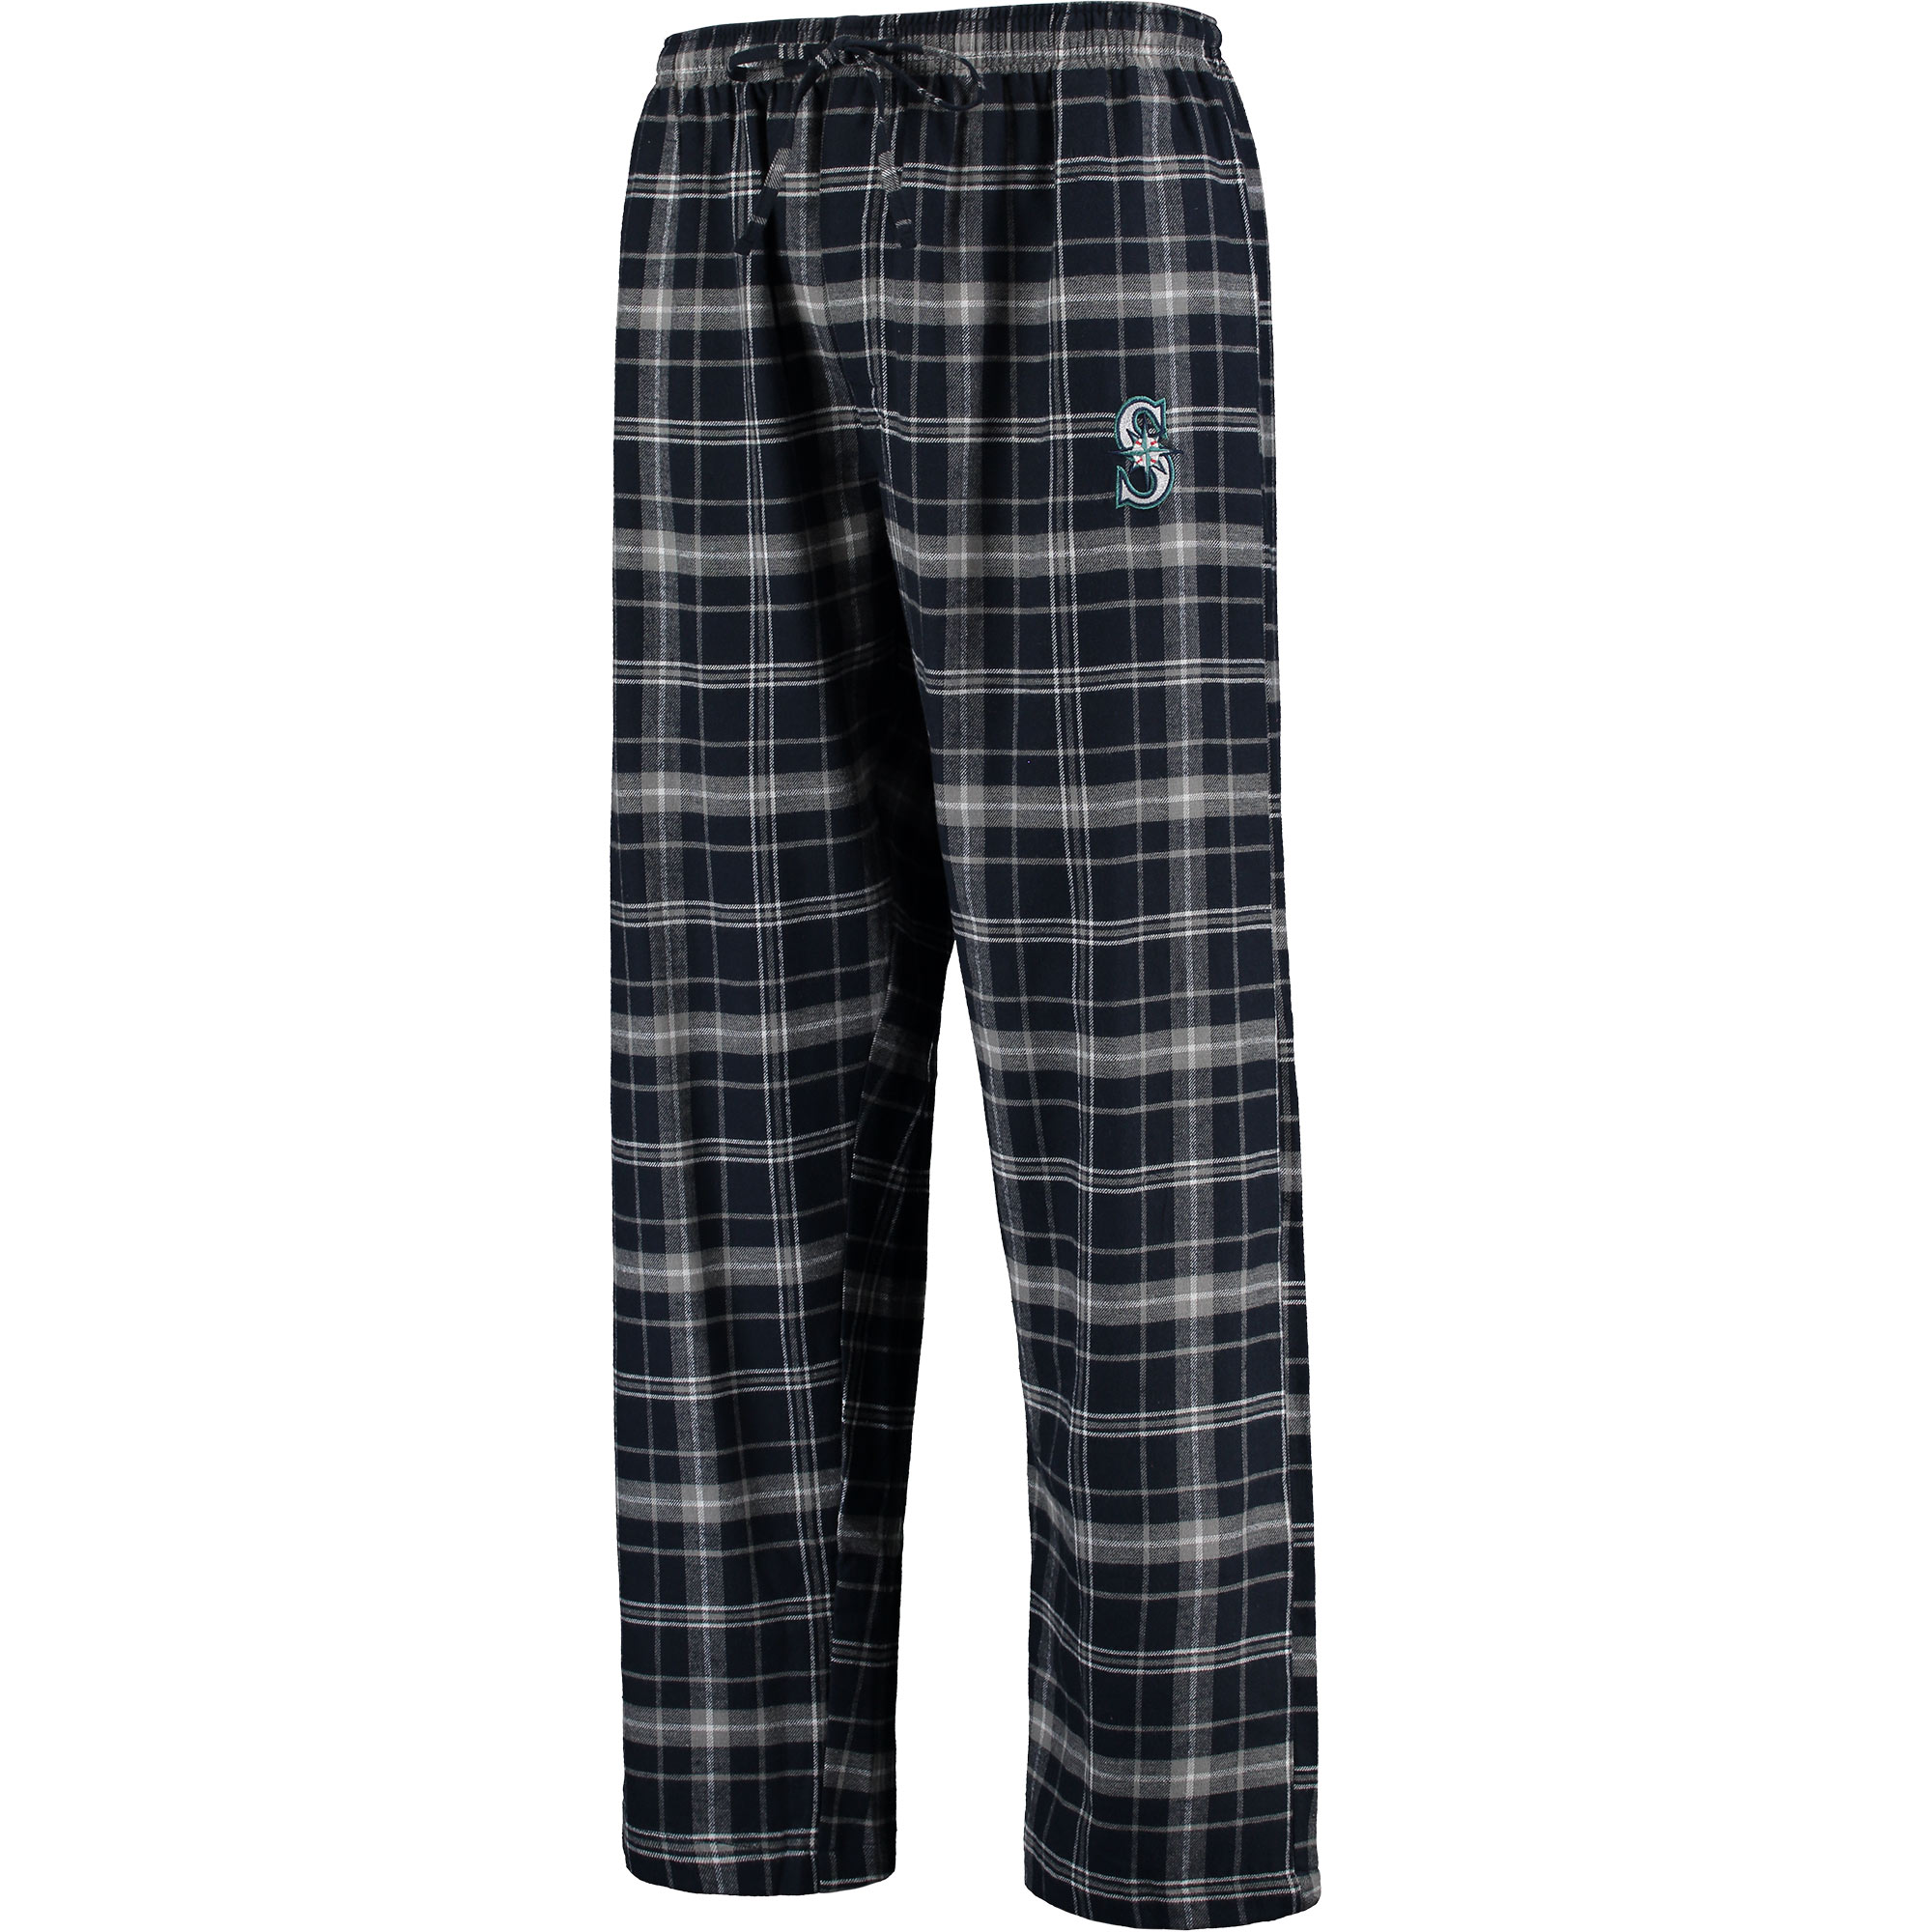 Seattle Mariners Concepts Sport Ultimate Plaid Flannel Pants - Navy/Gray